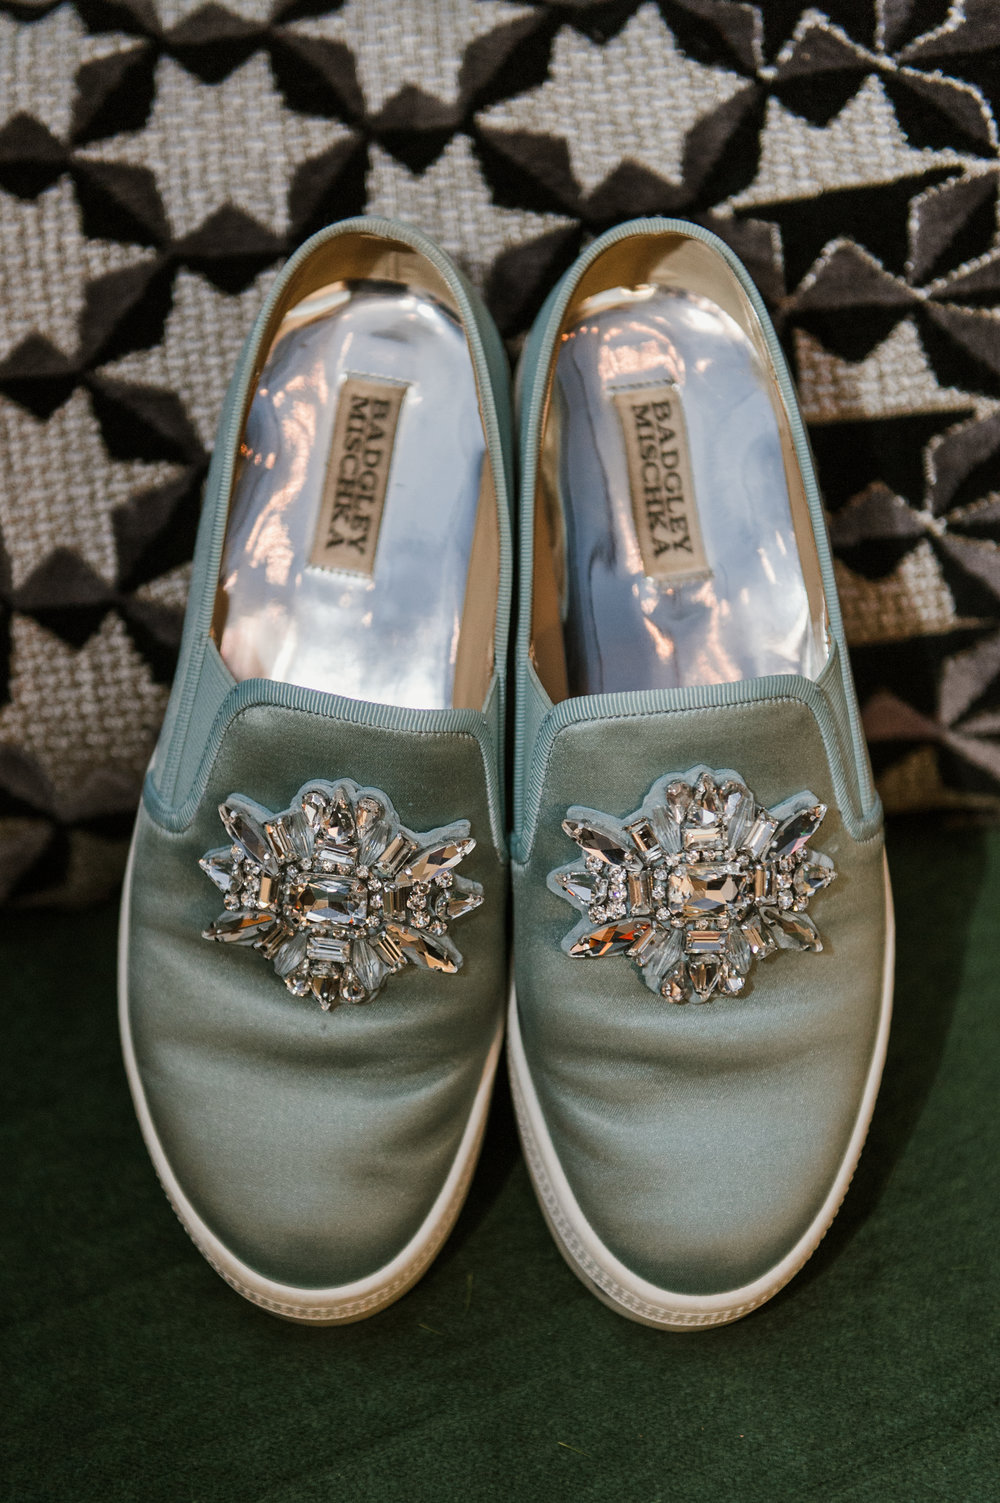 The bride's super stylish Badgley Mischka slip-ons, in a coordinating blue-green tone with just the right amount of sparkle!